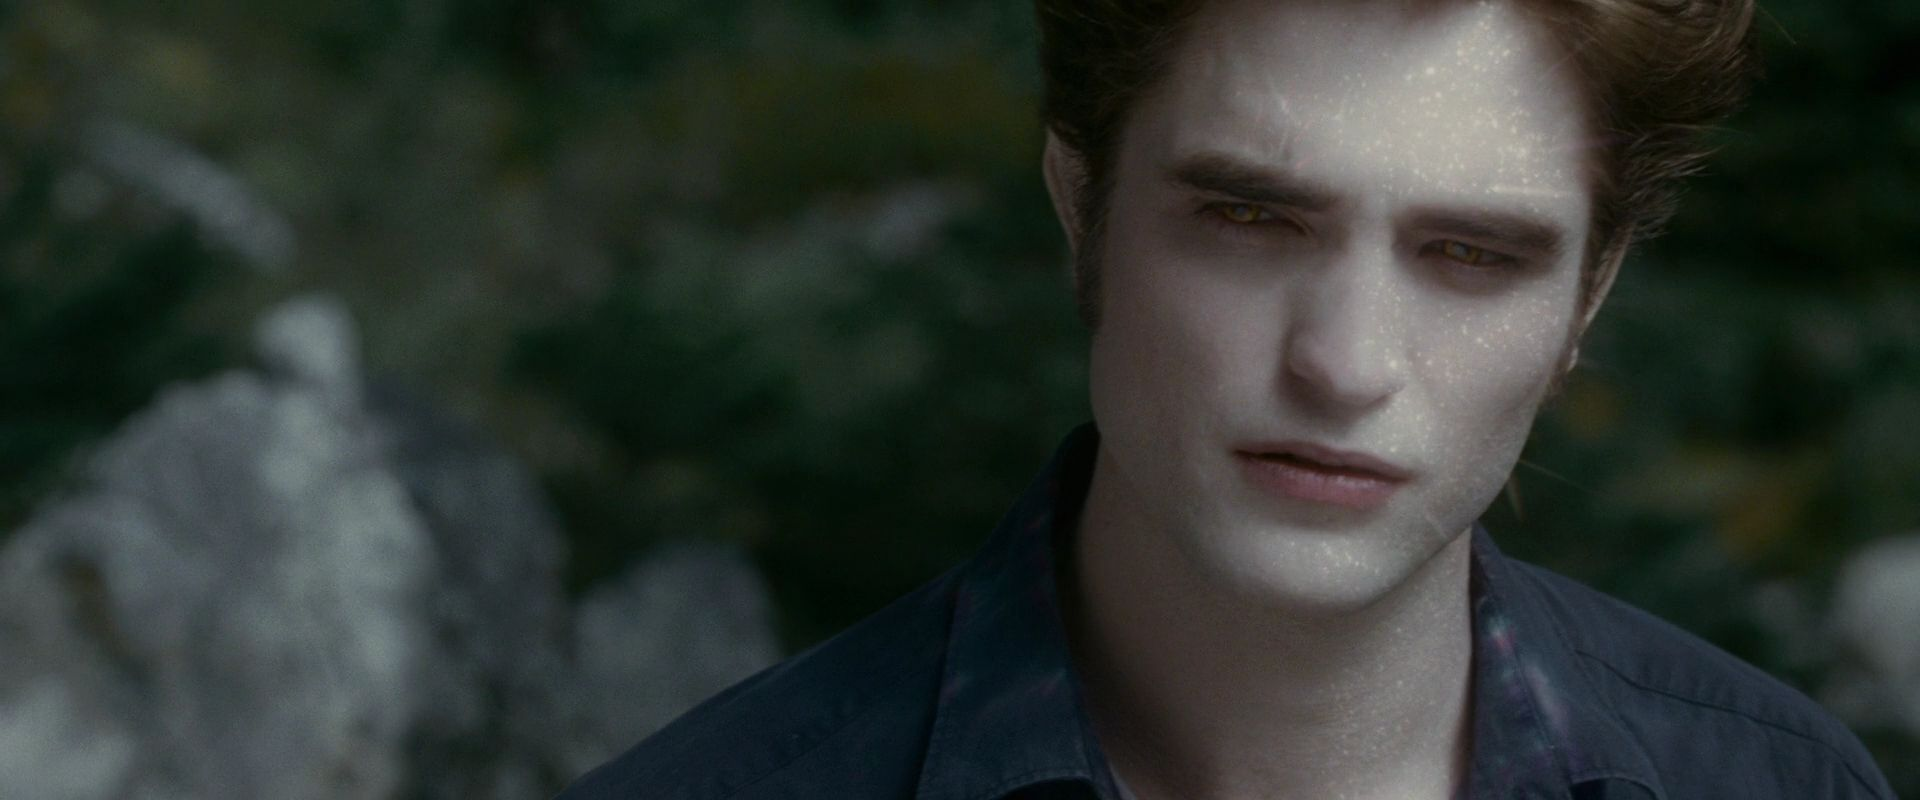 Edward Cullen - Edward Cullen Photo (18085342) - Fanpop